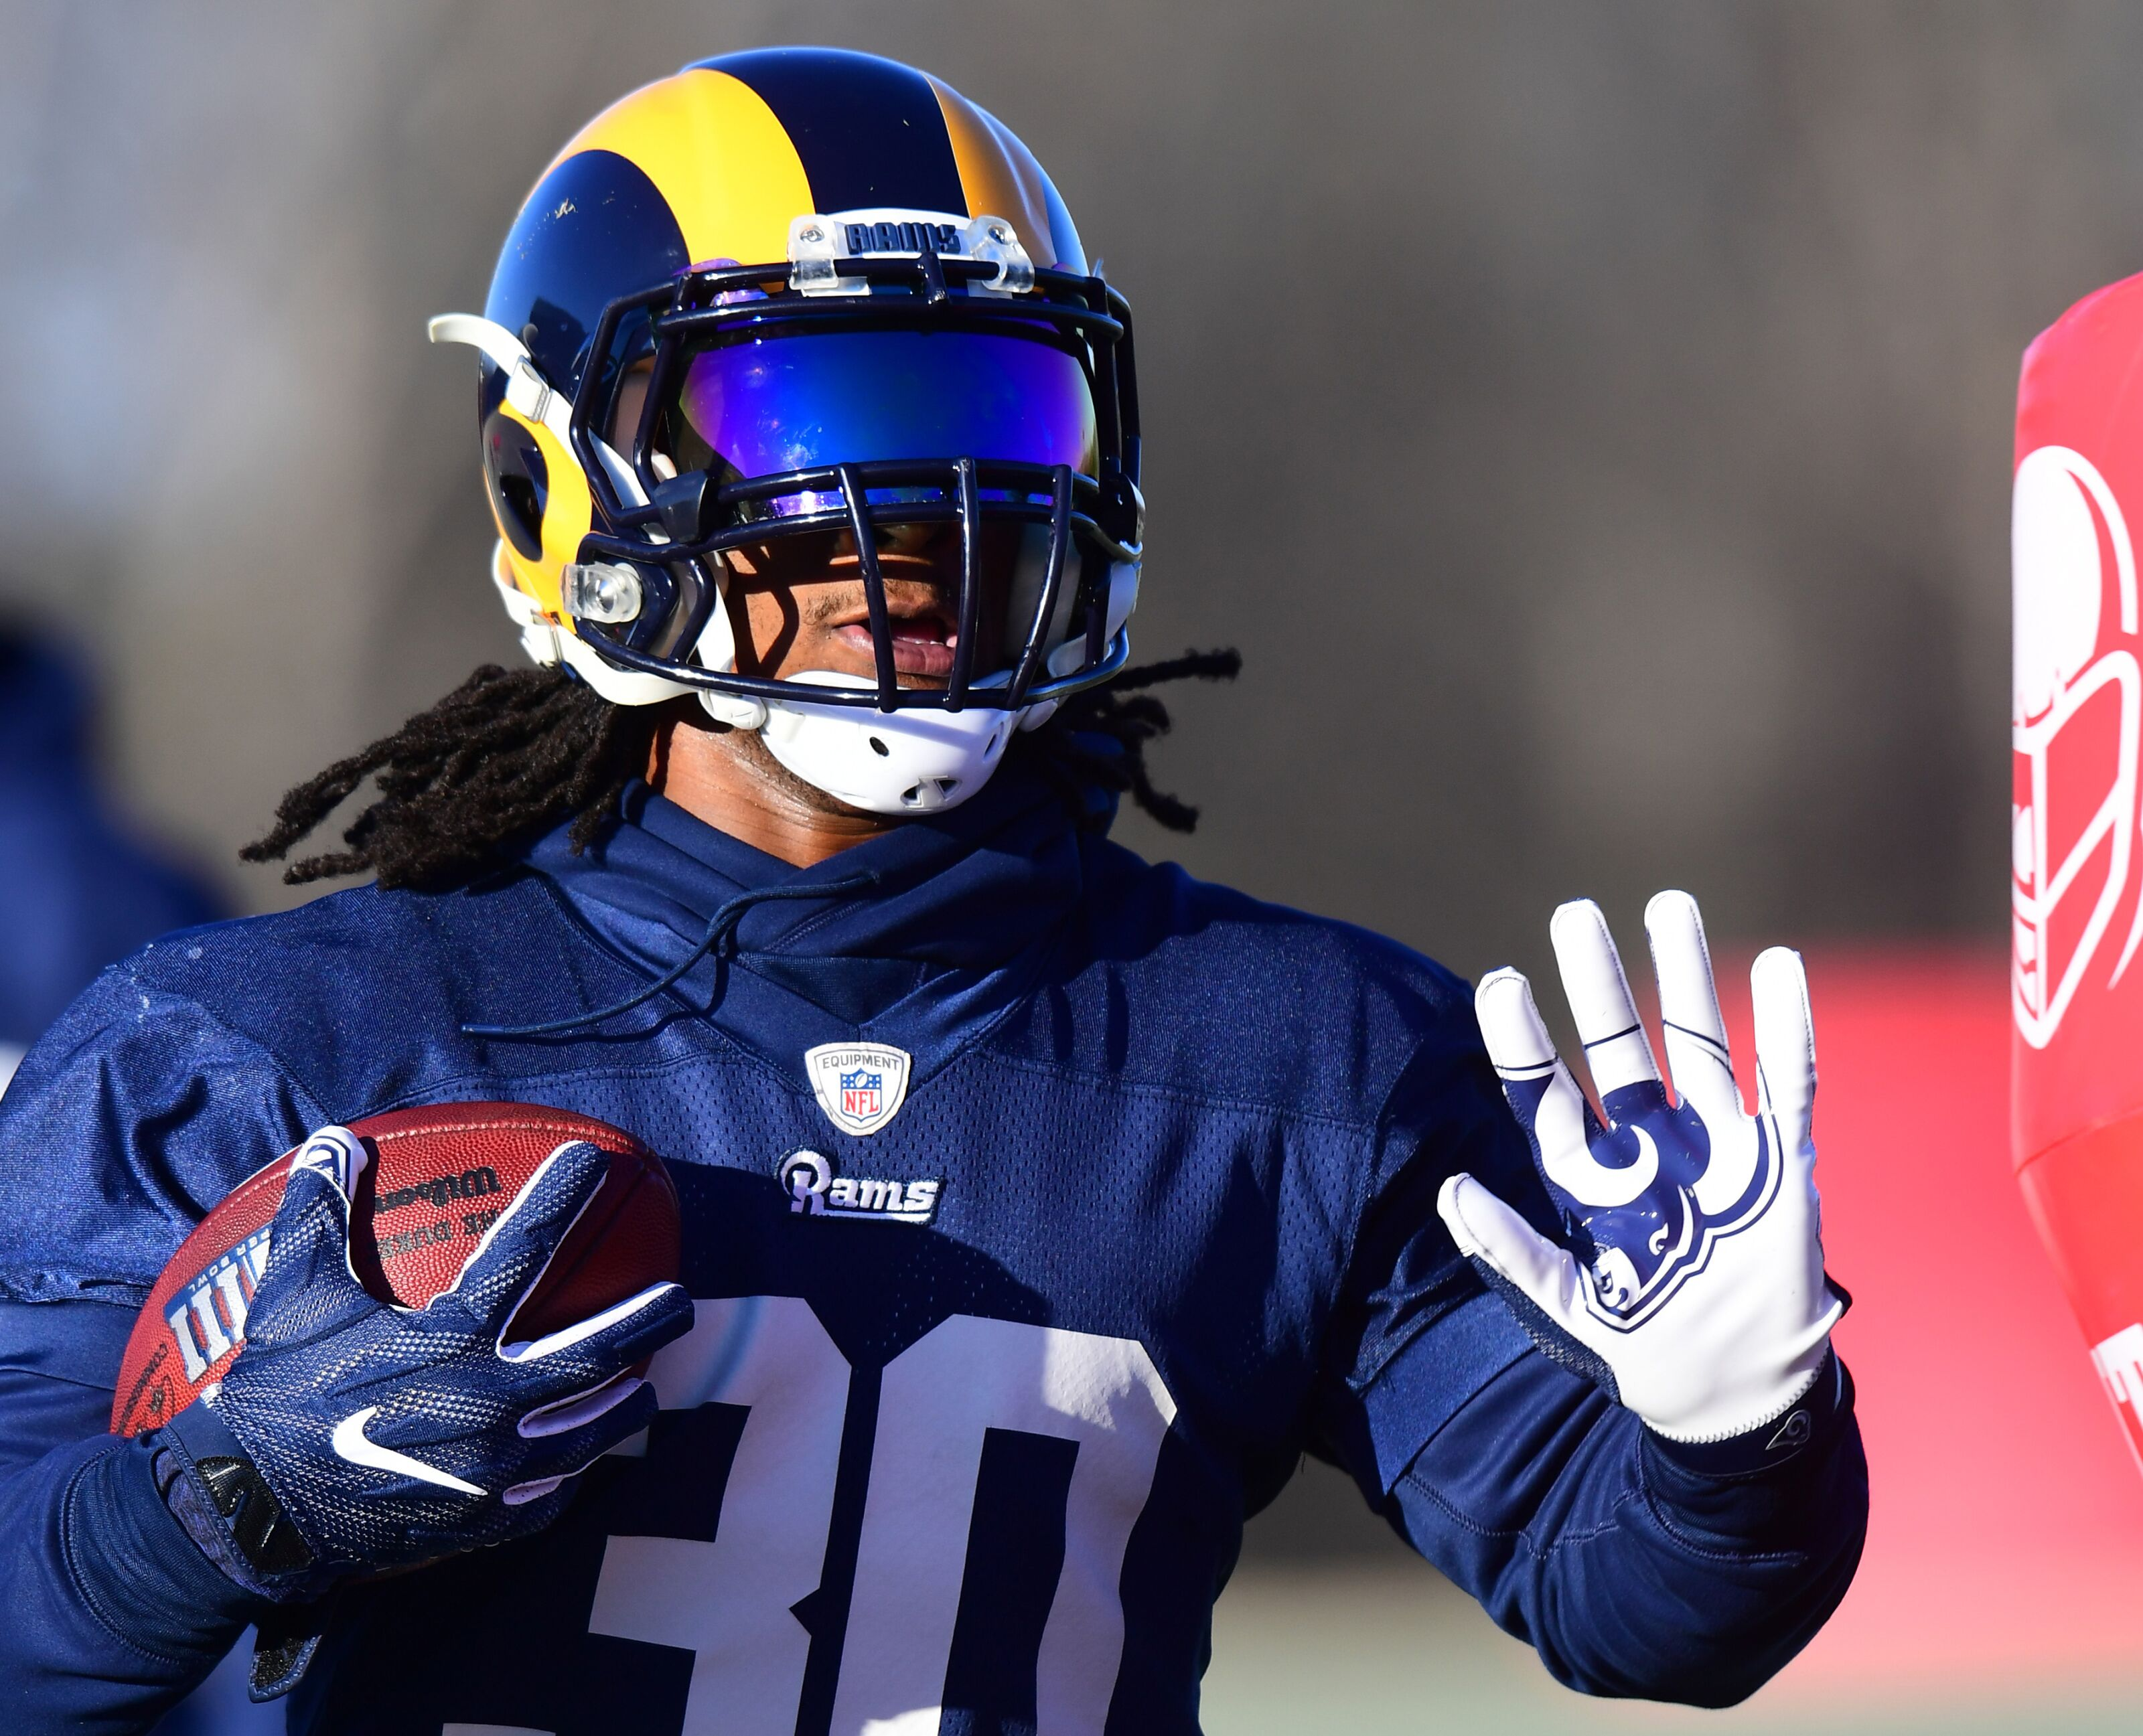 76babe4f Los Angeles Rams: Todd Gurley limping video brings new concerns